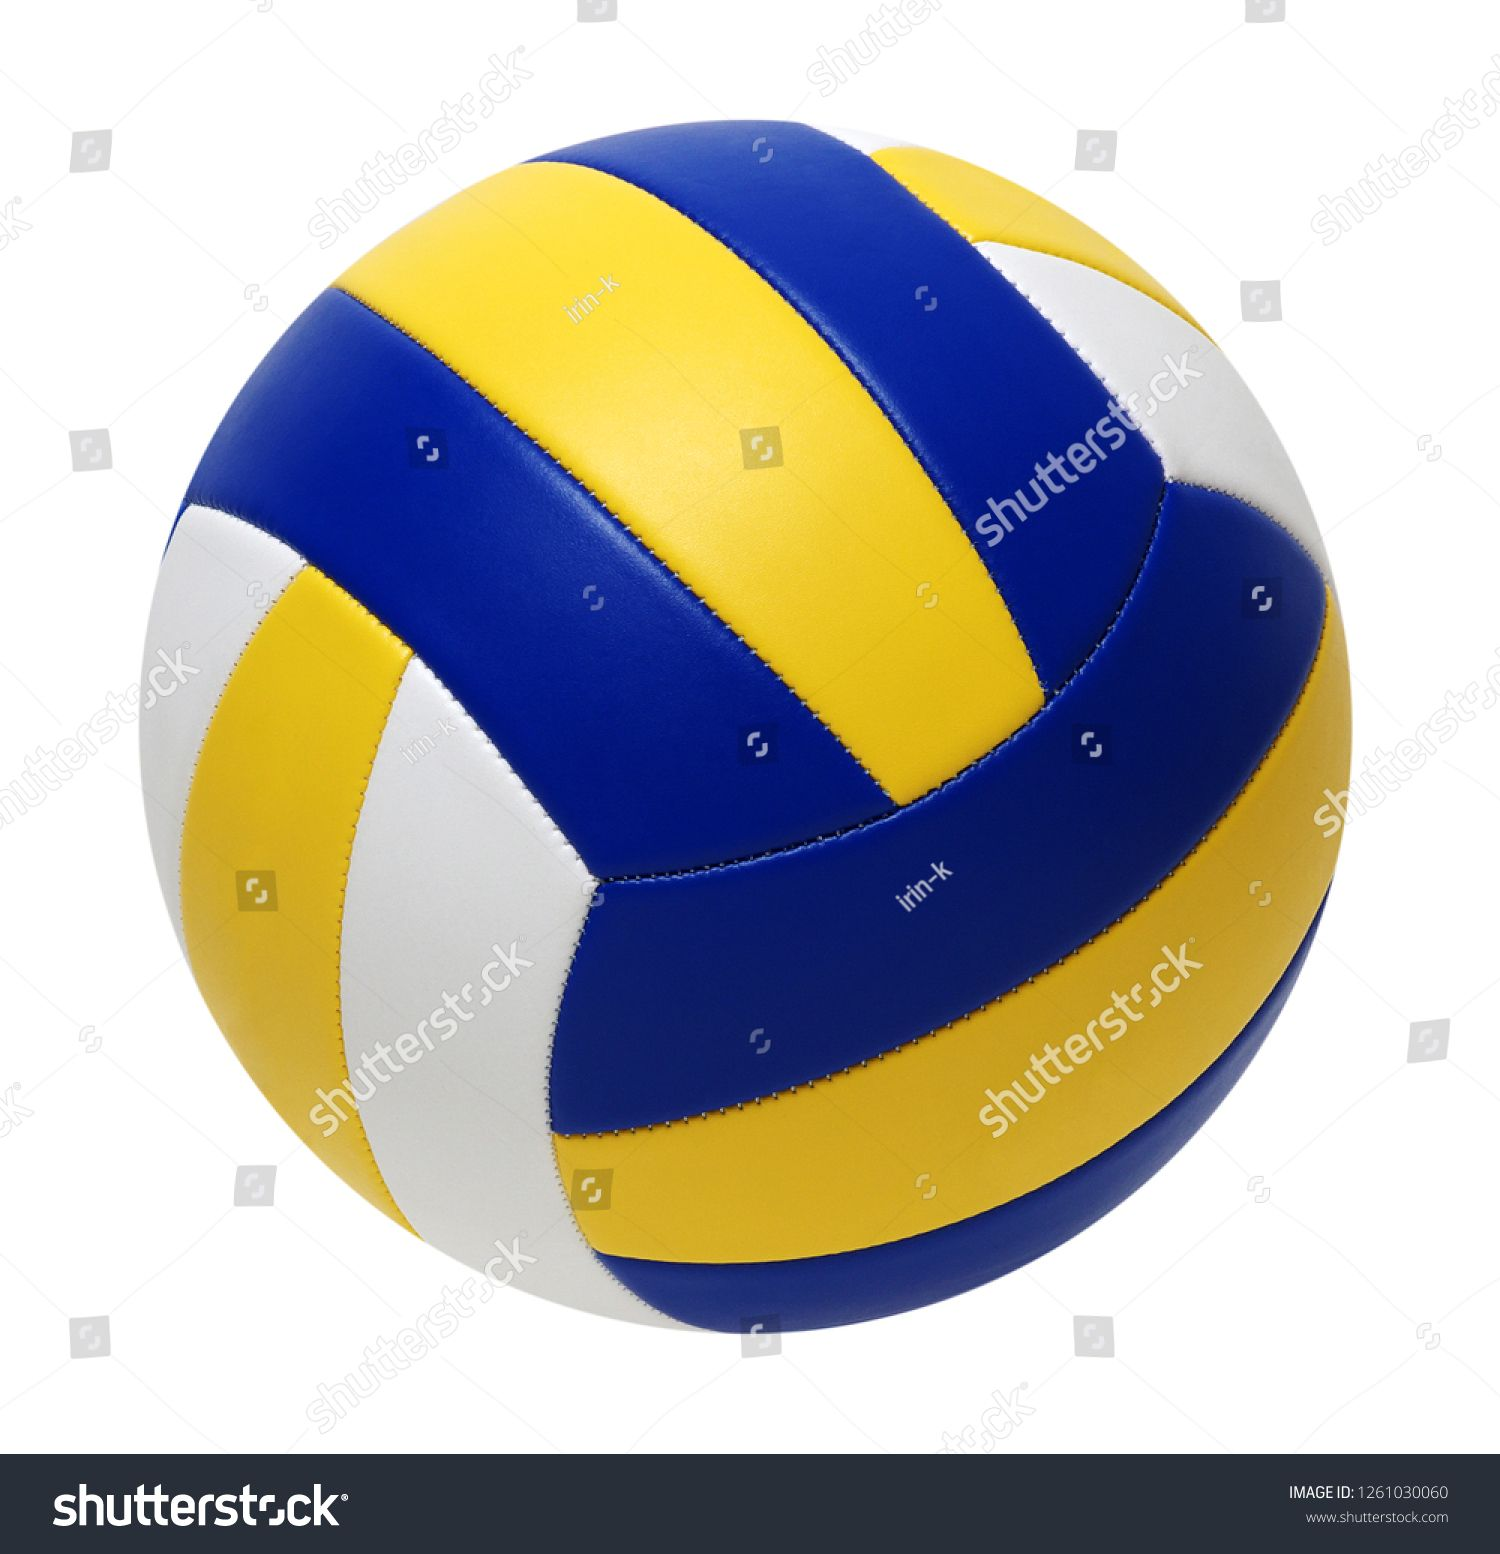 Volleyball Ball Isolated On White Background Sponsored Ad Ball Volleyball Isolated Background White Background Photo Editing Ball